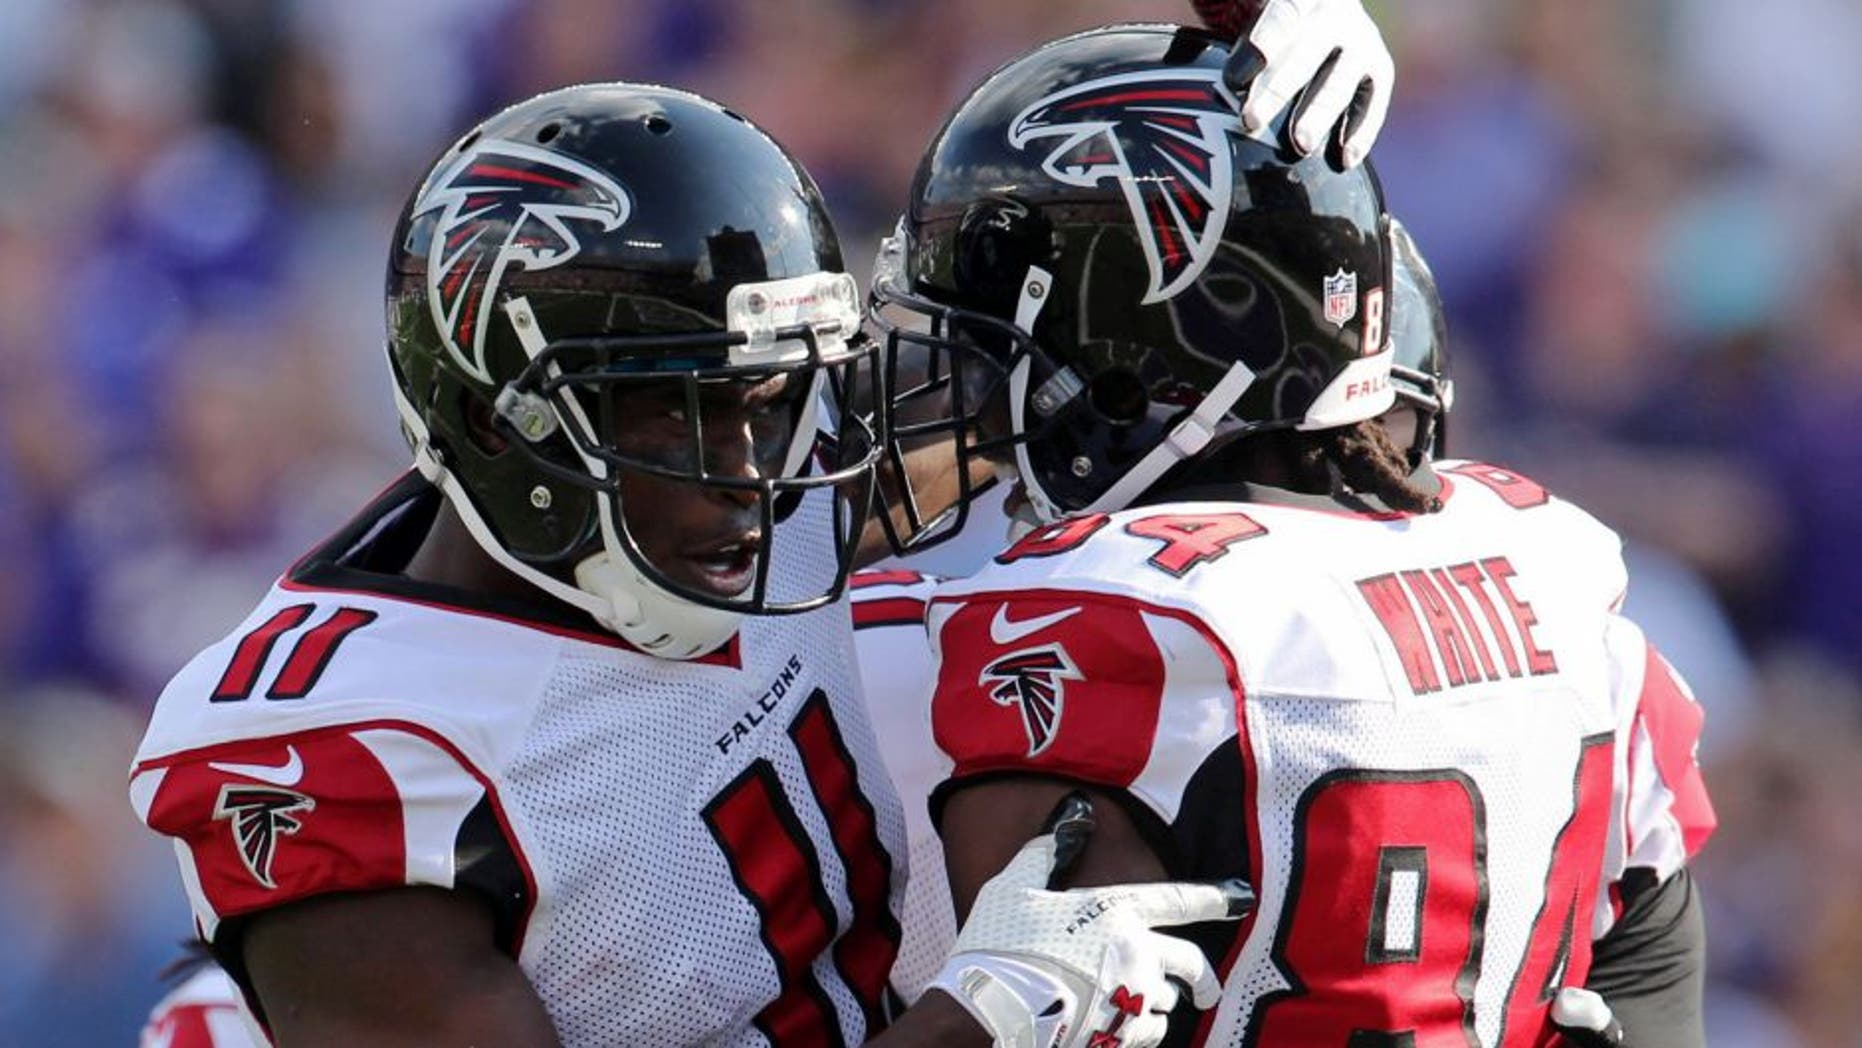 Sep 28, 2014; Minneapolis, MN, USA; Atlanta Falcons wide receiver Roddy White (84) celebrates his touchdown with wide receiver Julio Jones (11) during the first quarter against the Minnesota Vikings at TCF Bank Stadium. Mandatory Credit: Brace Hemmelgarn-USA TODAY Sports